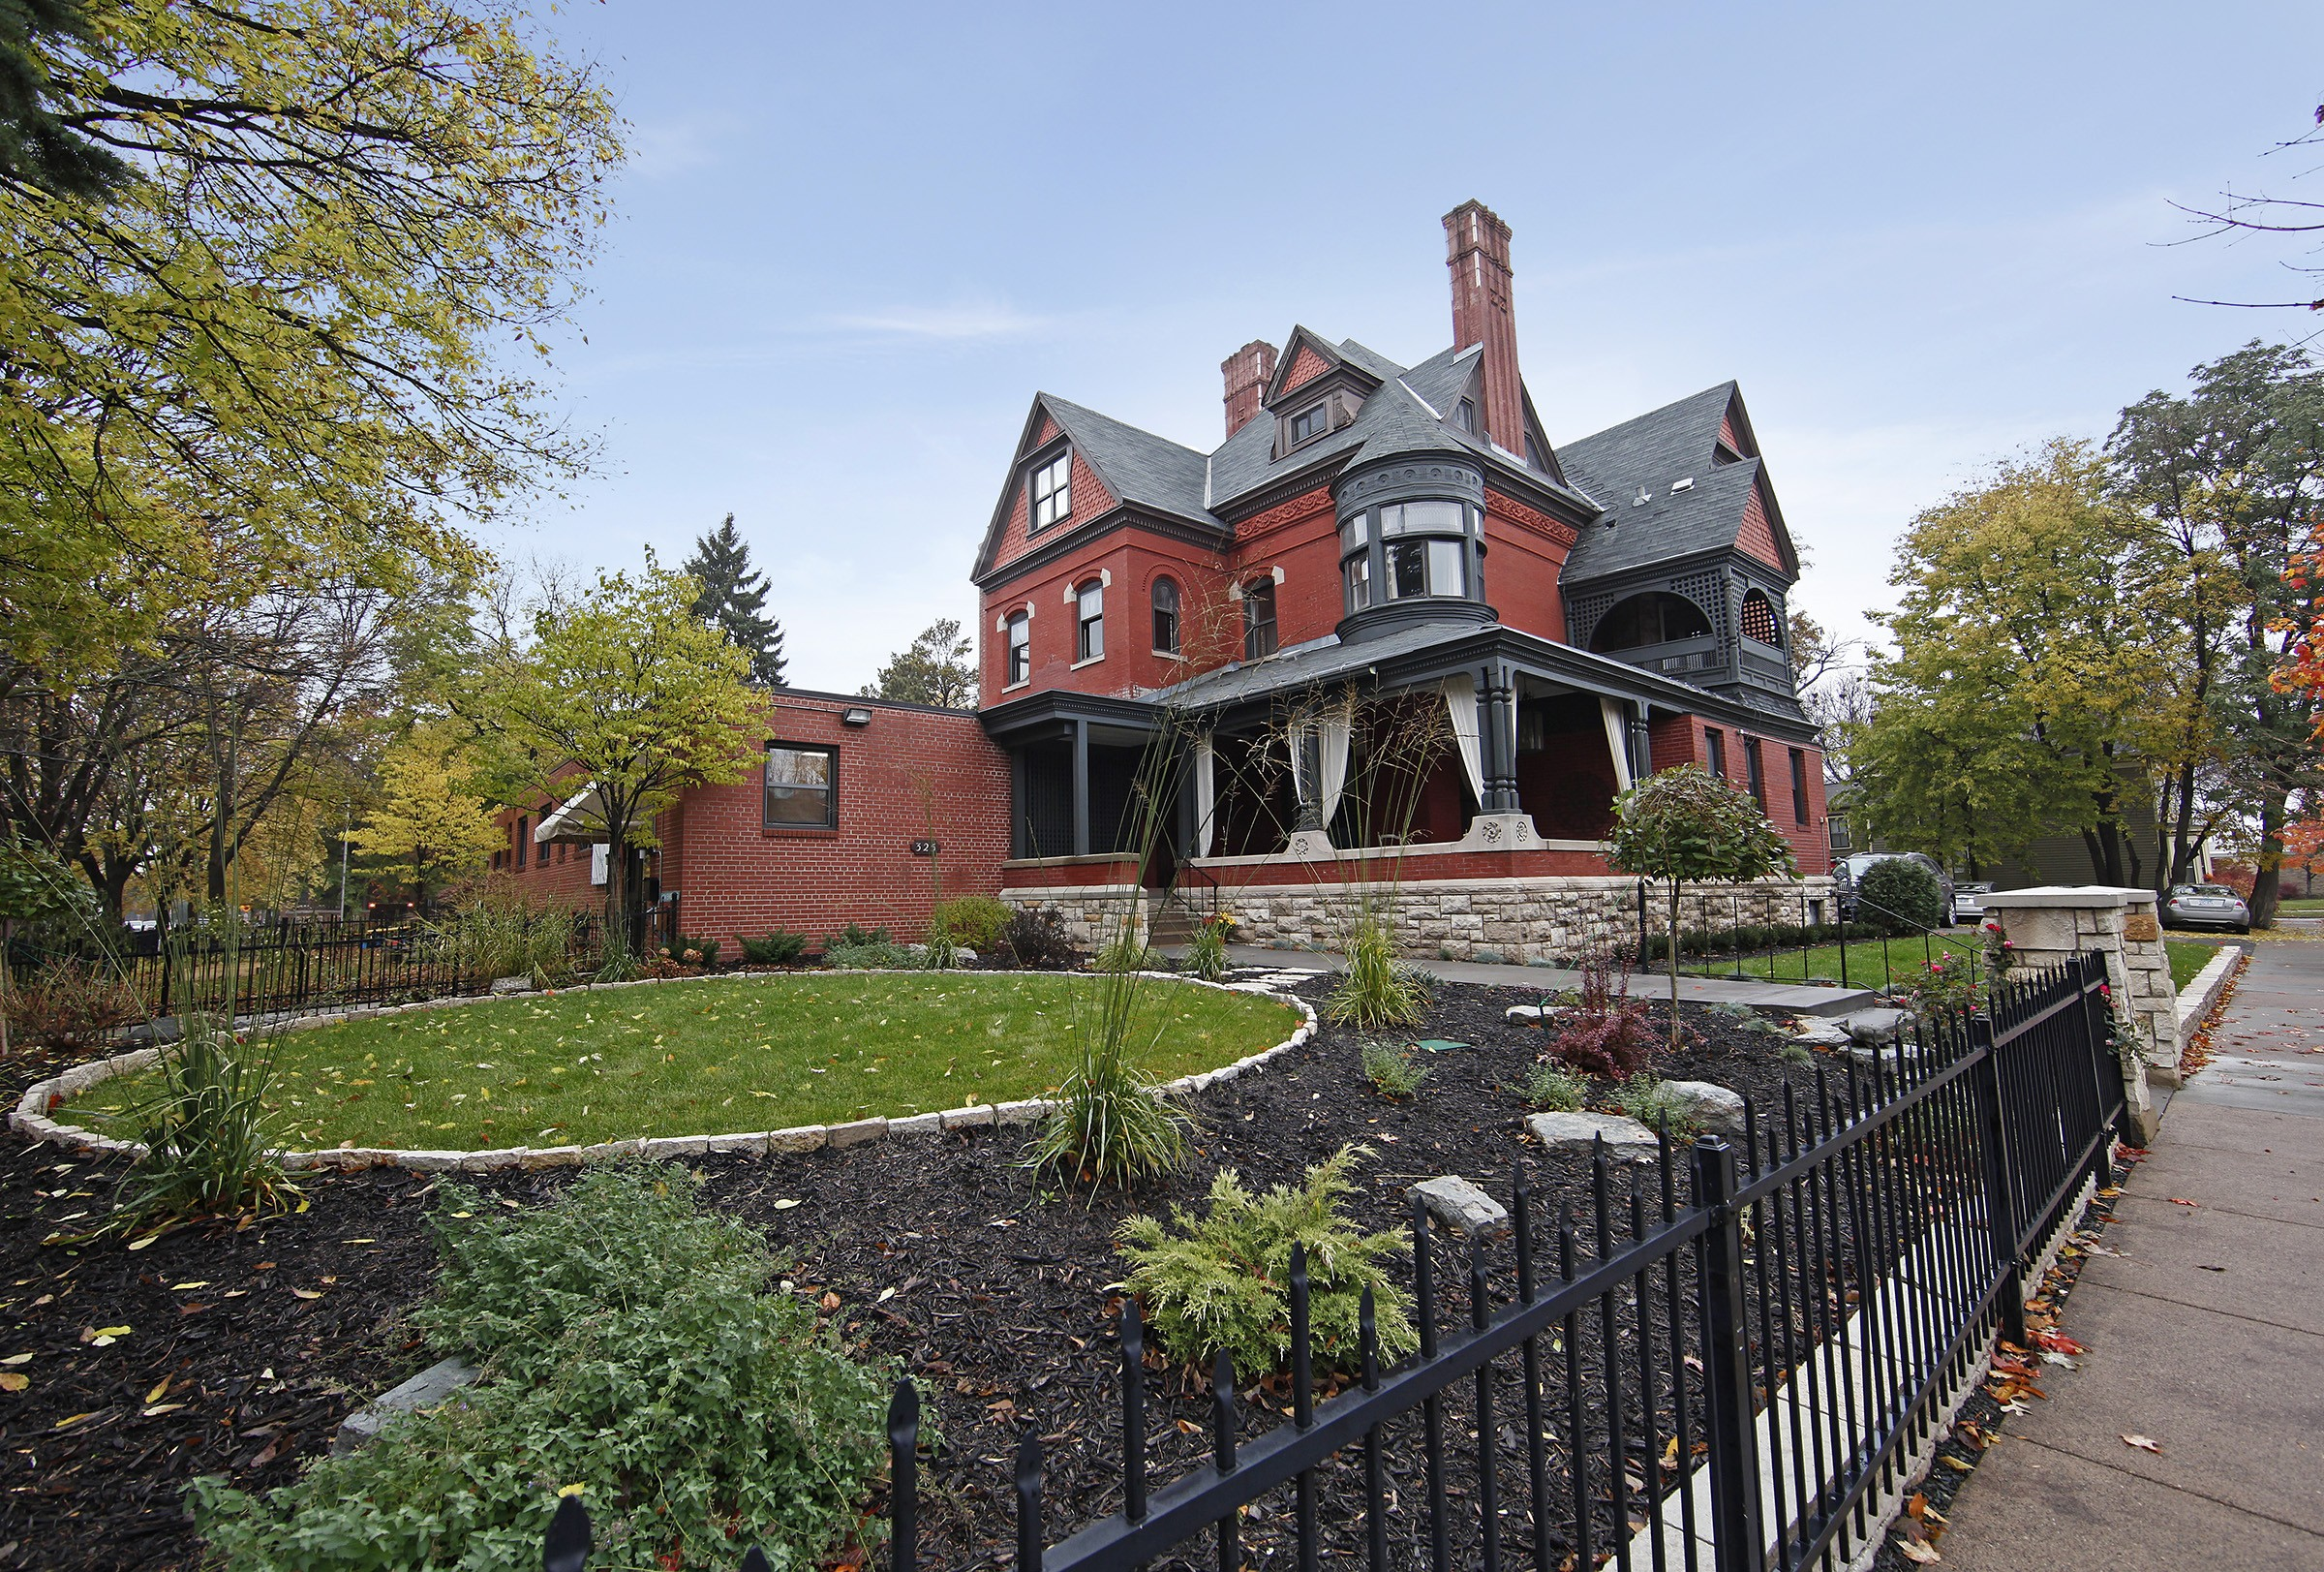 The New Victorian Mansion Bed & Breakfast